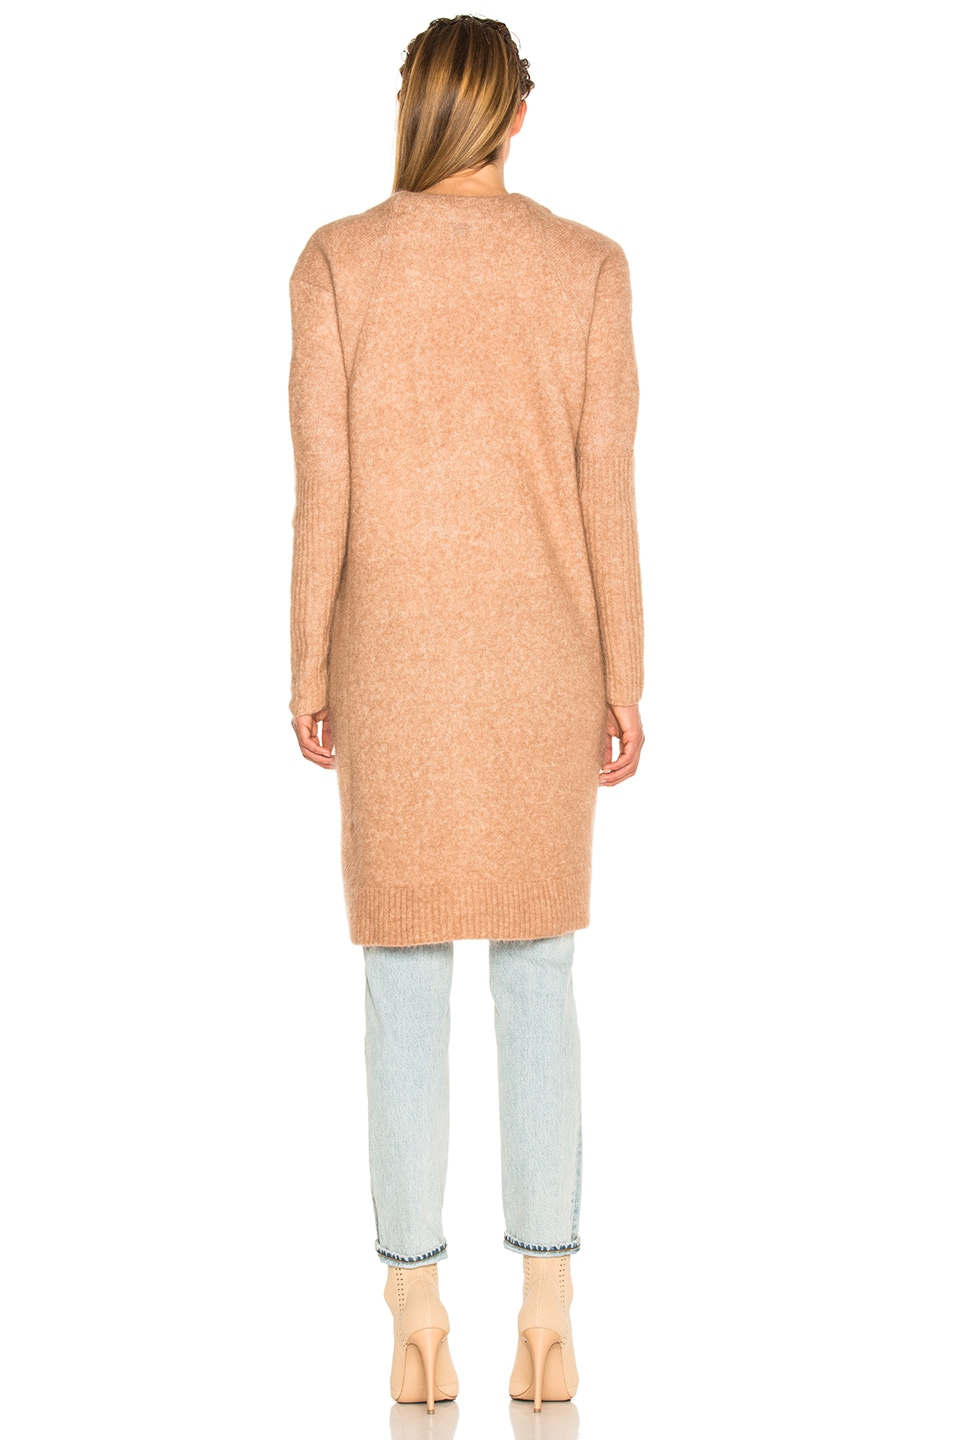 Image 4 of Acne Studios Raya Sweater in Camel Beige